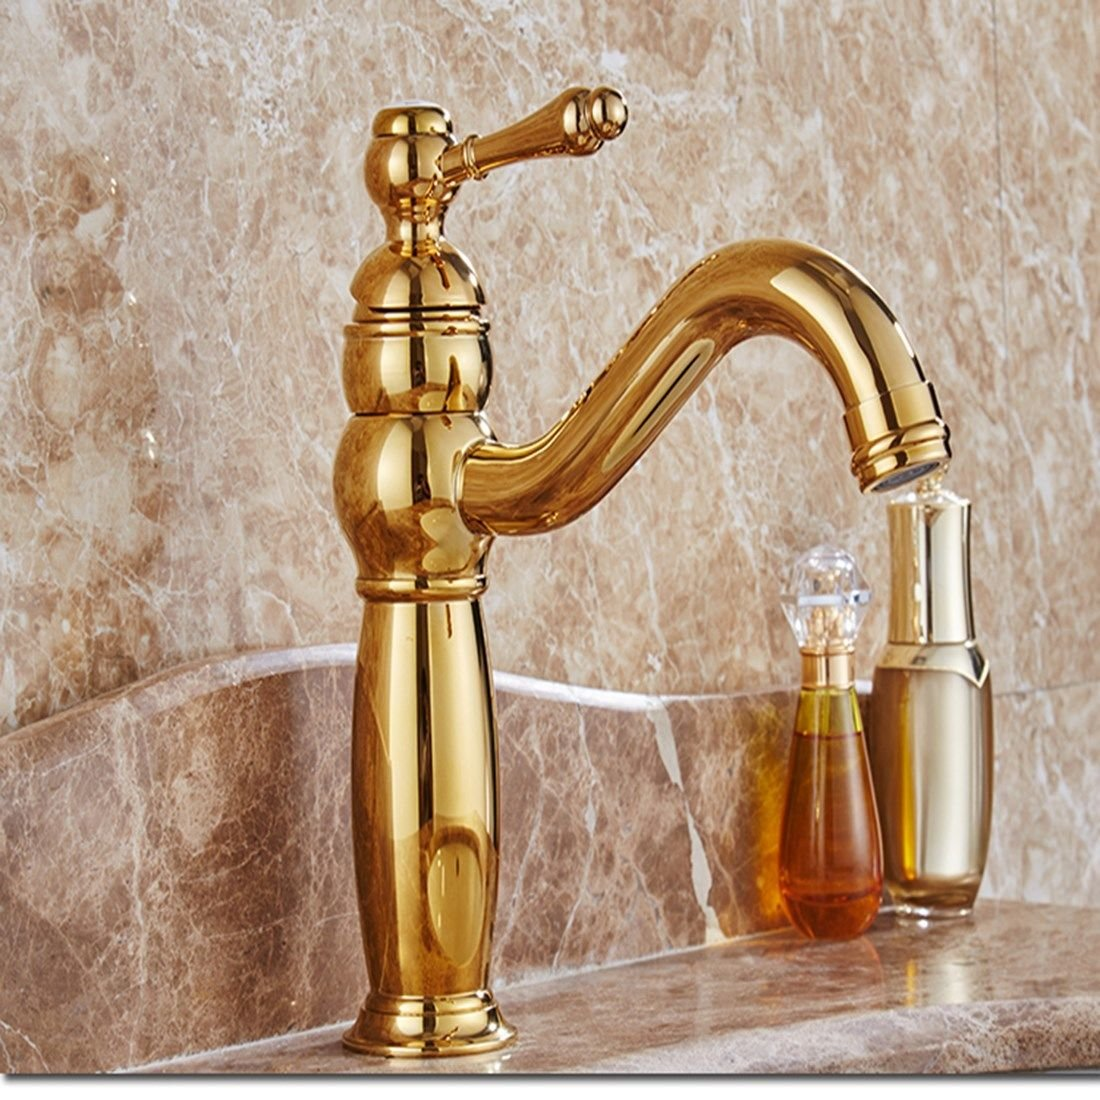 Lpophy Bathroom Sink Mixer Taps Faucet Bath Waterfall Cold and Hot Water Tap for Washroom Bathroom and Kitchen golden Hot and Cold Copper 360 redating gold-Plated Antique